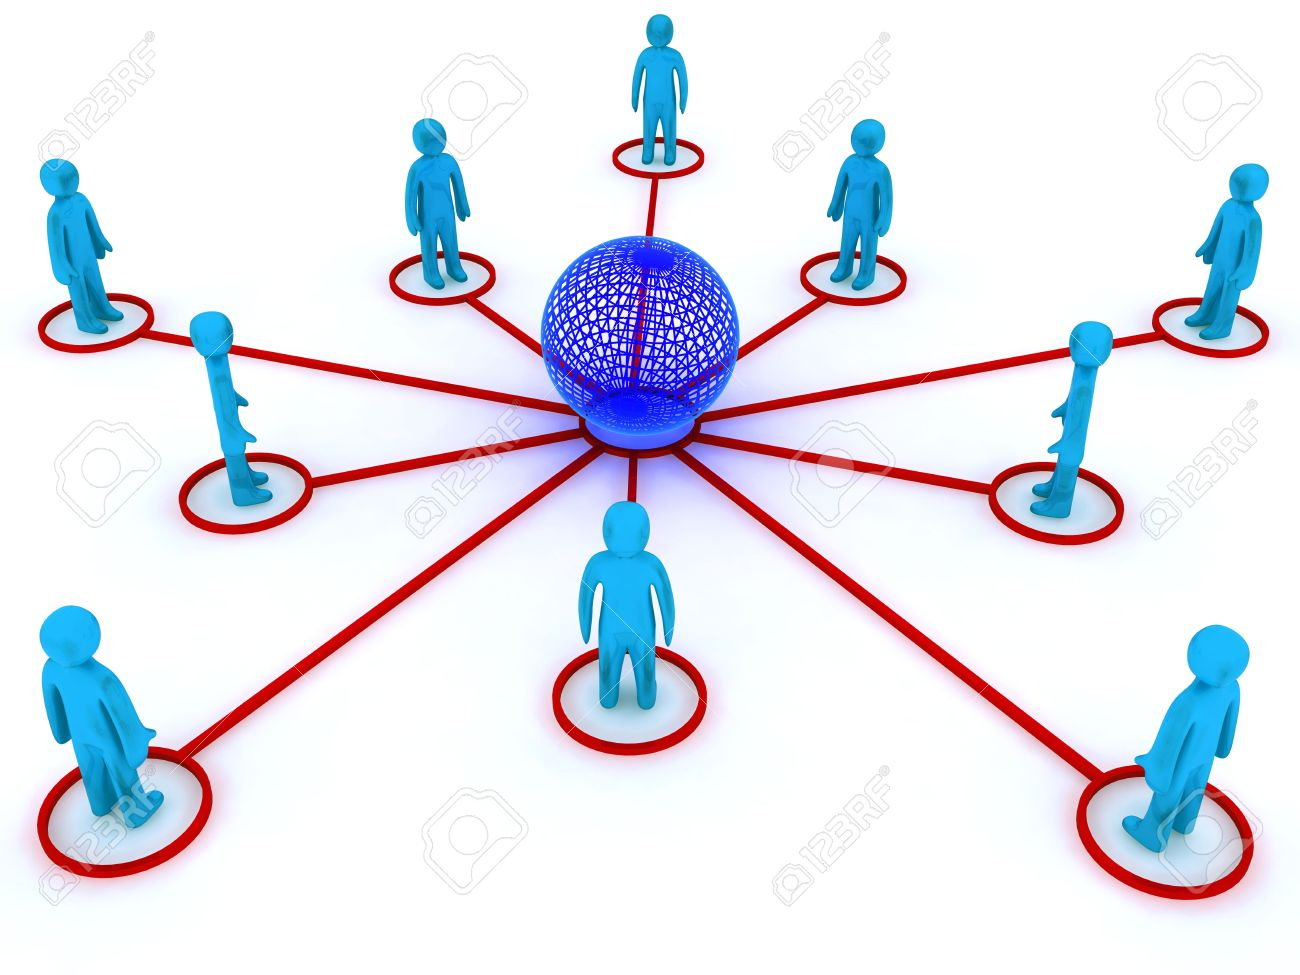 Concept image representing global networking. This image is 3d render. Stock Photo - 4914832